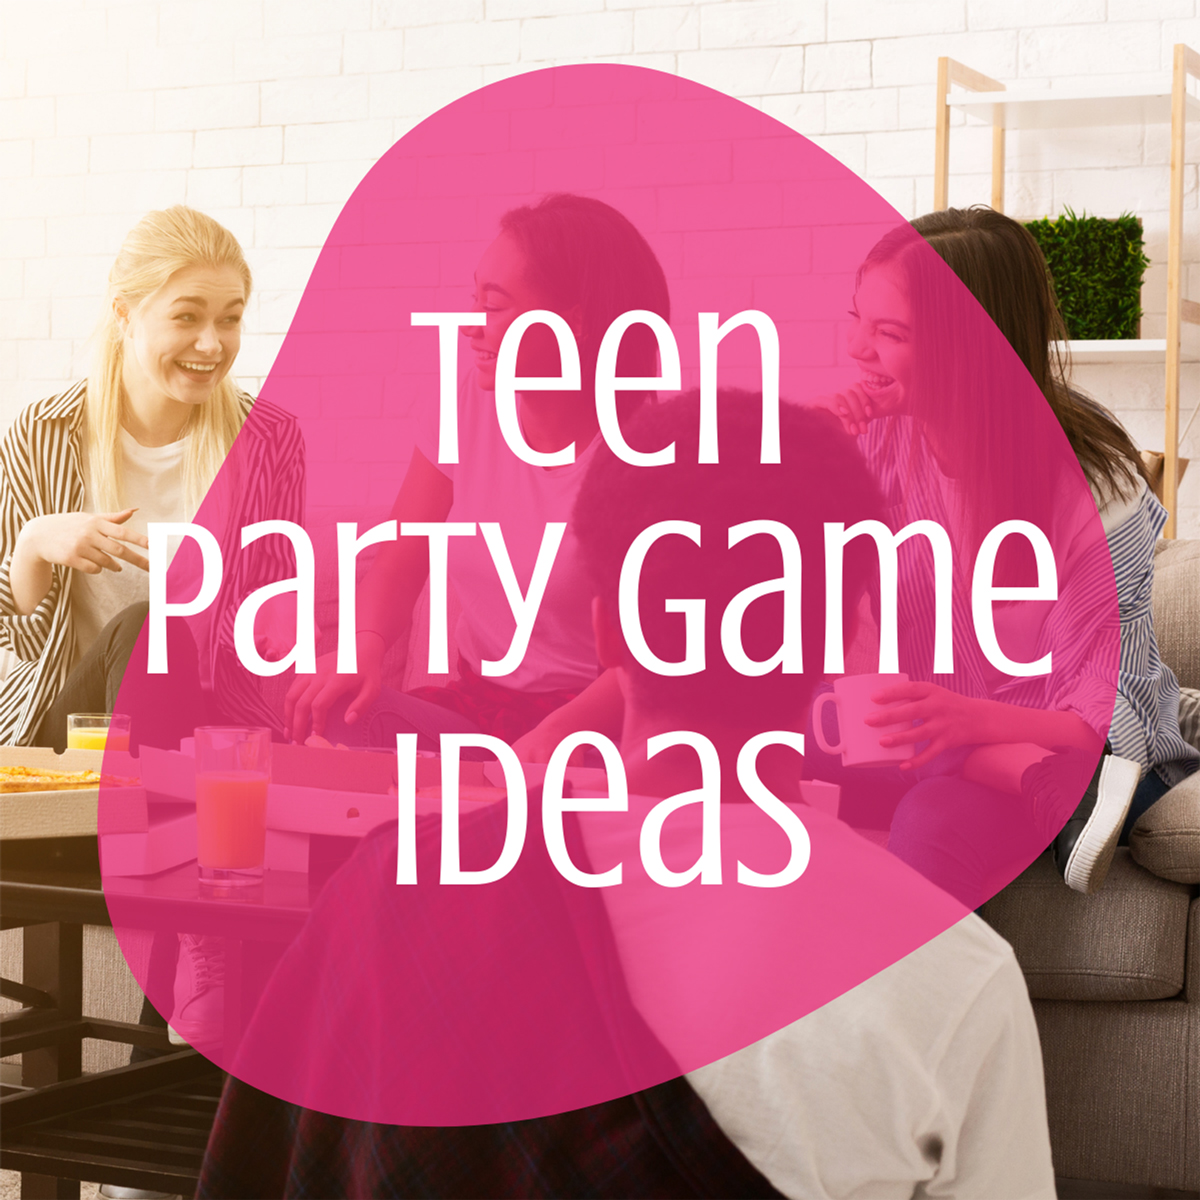 Teen Party Game Ideas